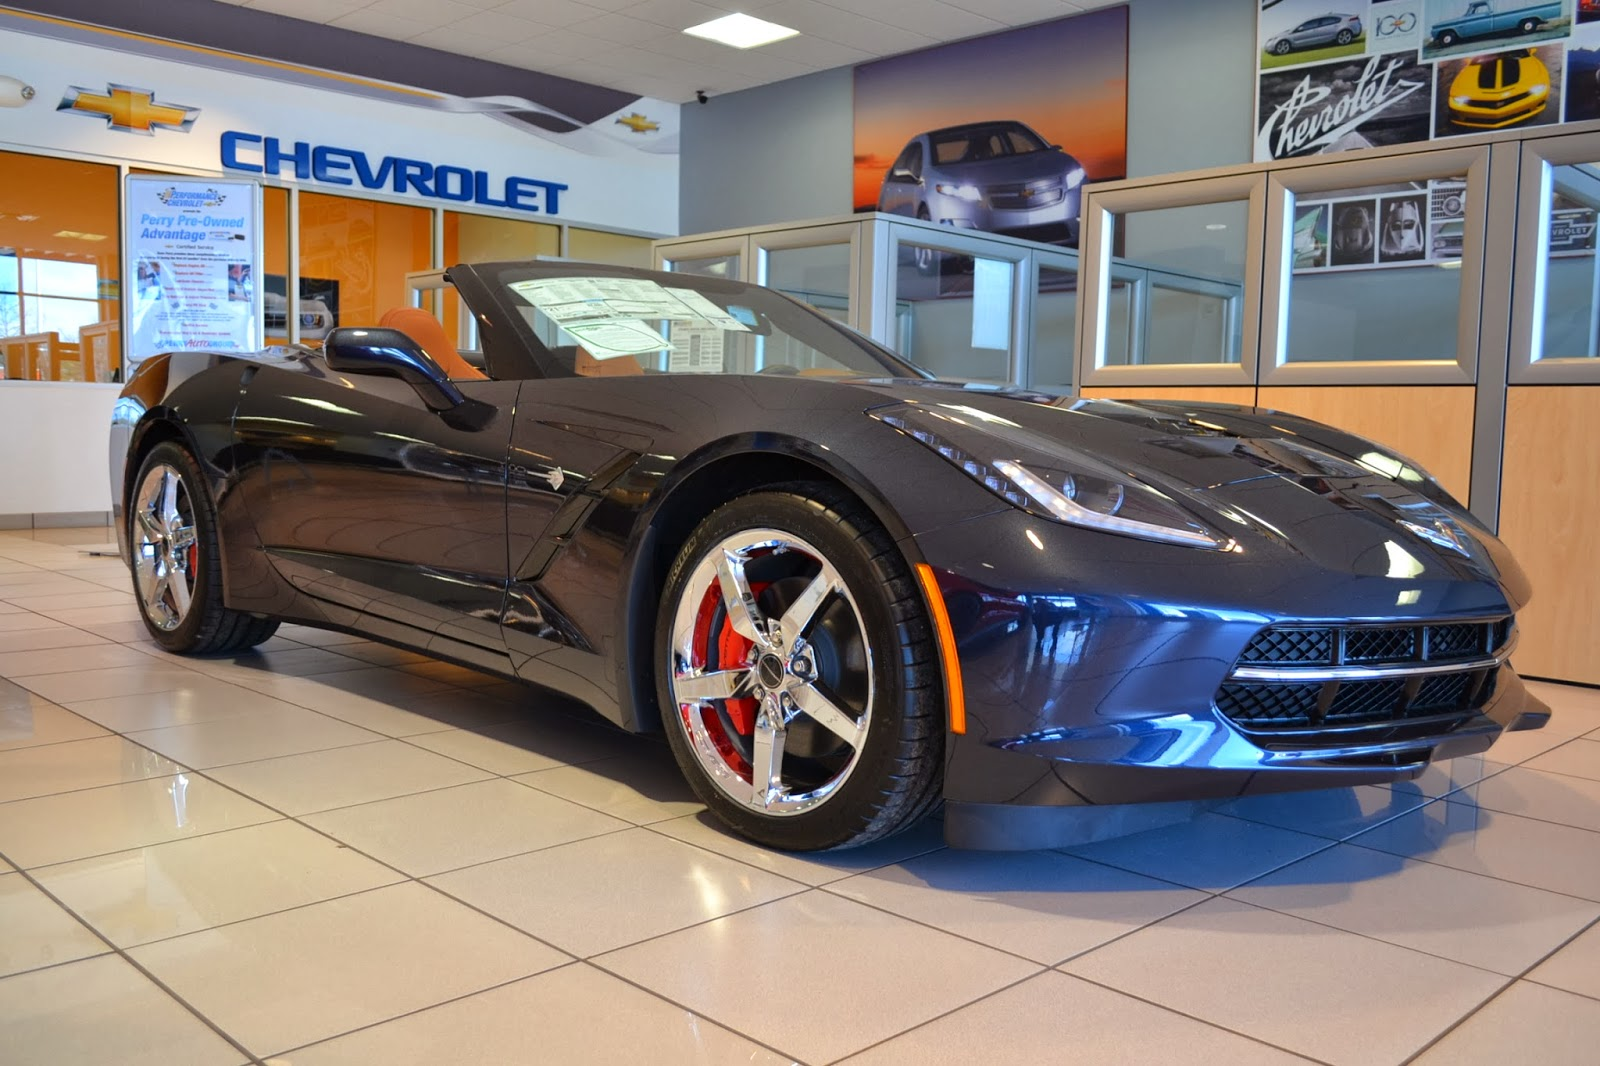 2014 Chevrolet Corvette Stingray For Sale Near Raleigh NC